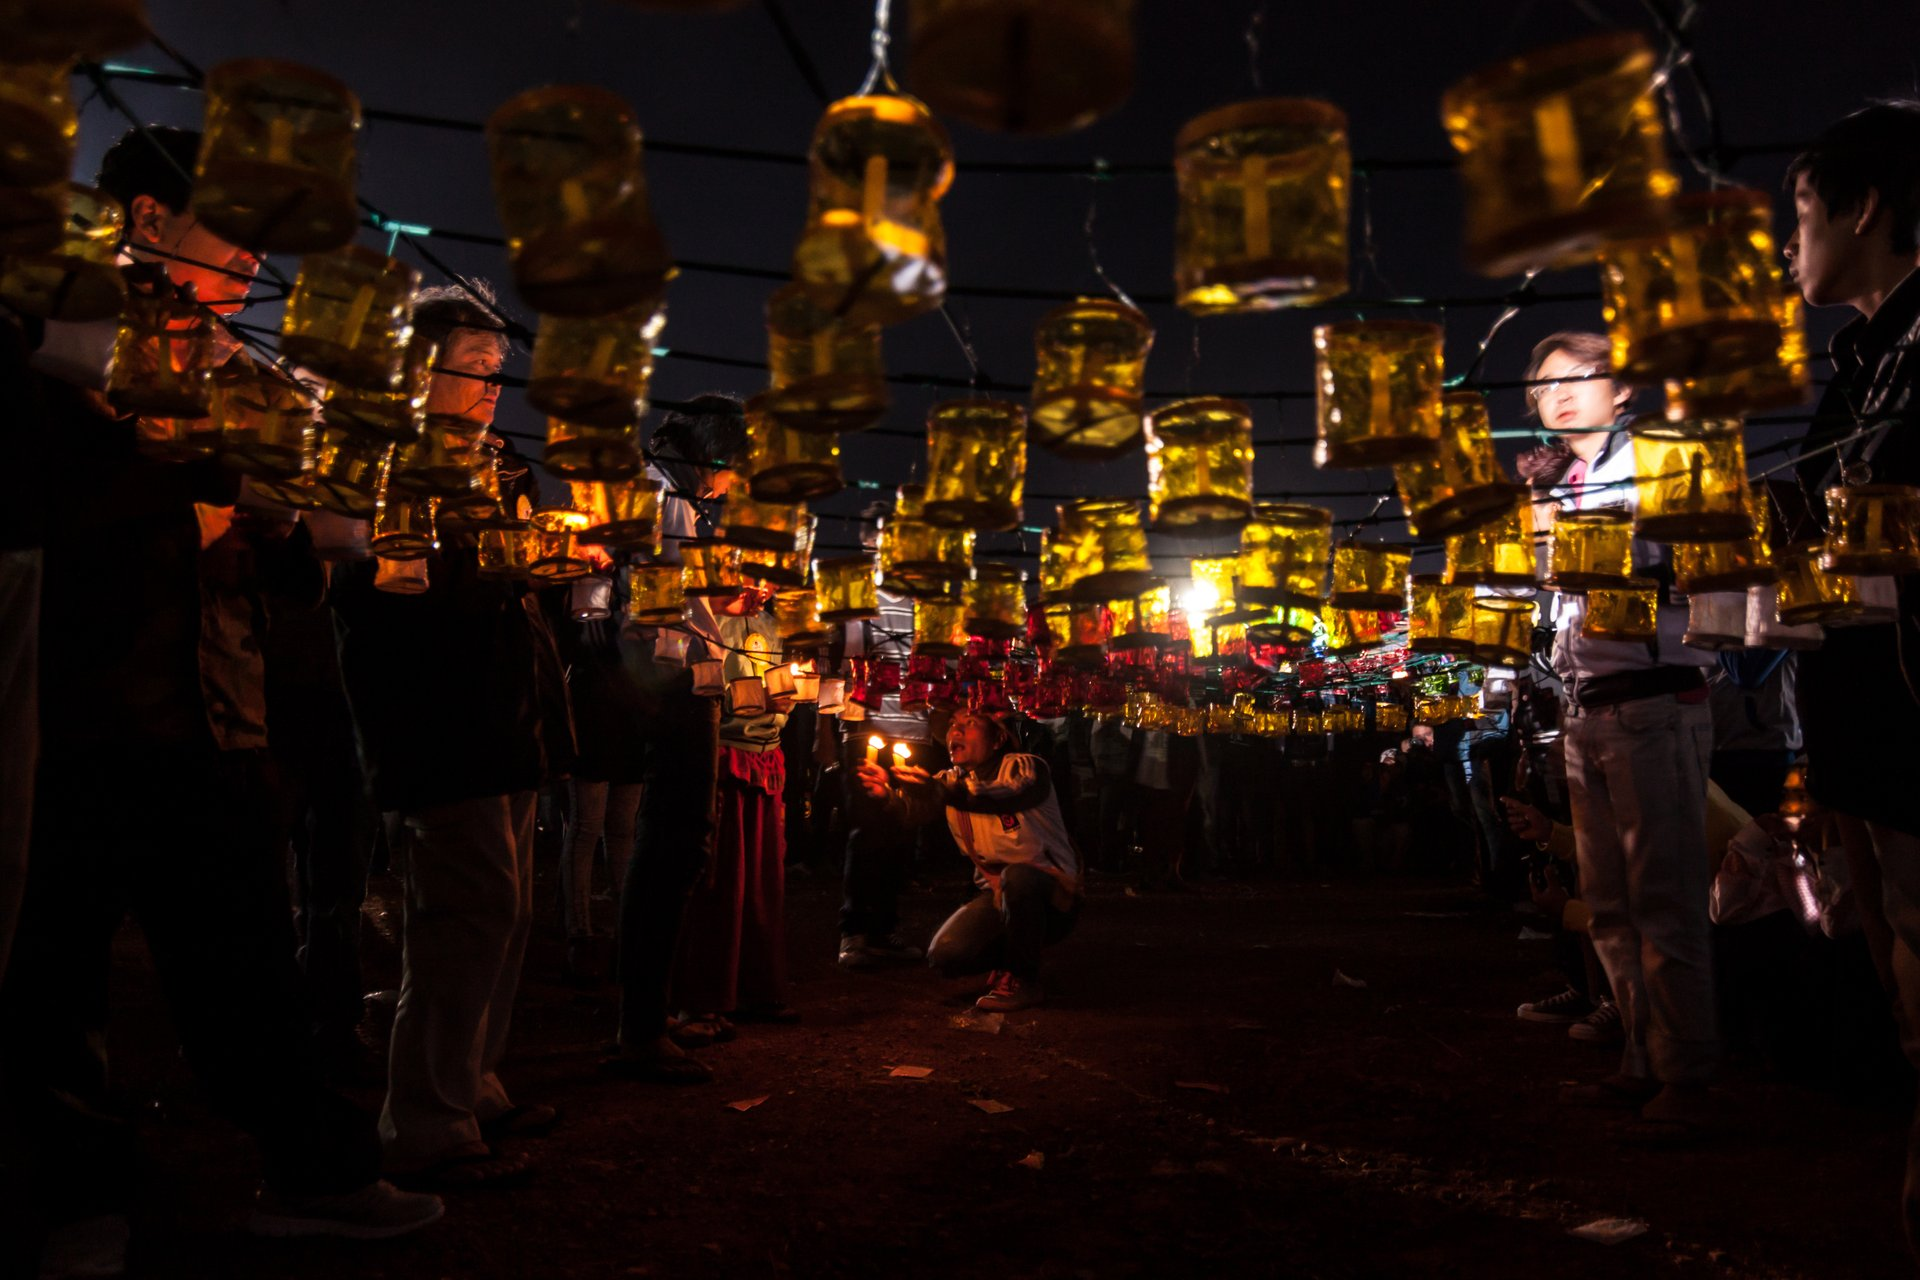 Tazaungdaing Light Festival in Myanmar 2019 - Best Time